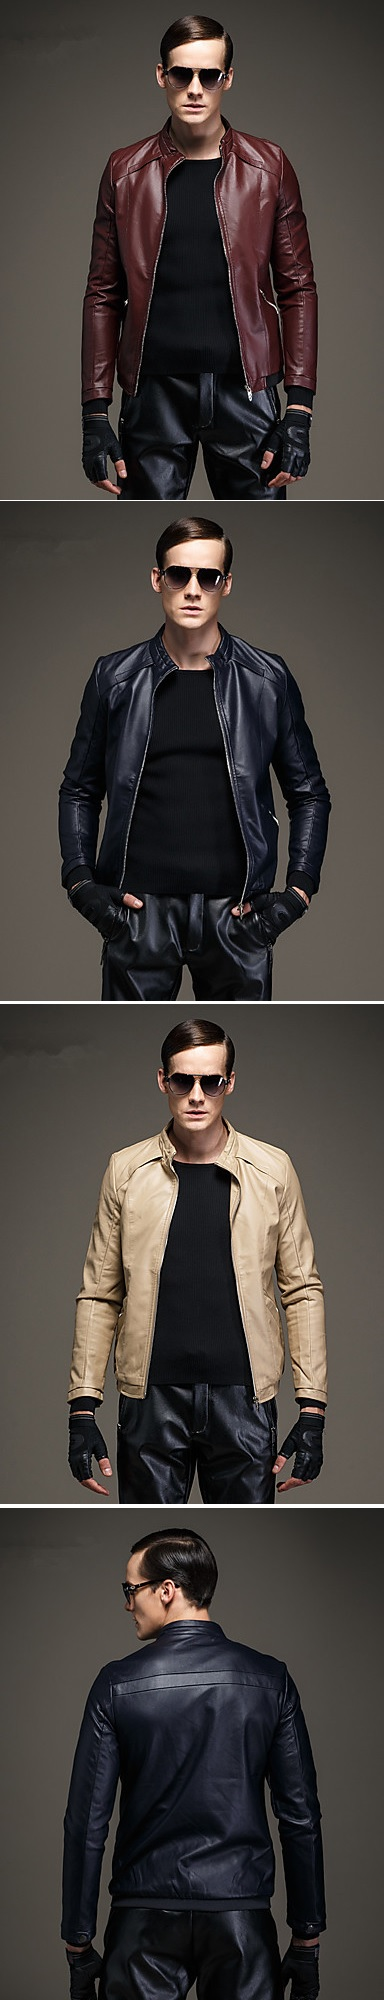 A little bit of Matrix ... Stylish trendy fine leather jacket (comes in black, white, brown colors ) at $59.99